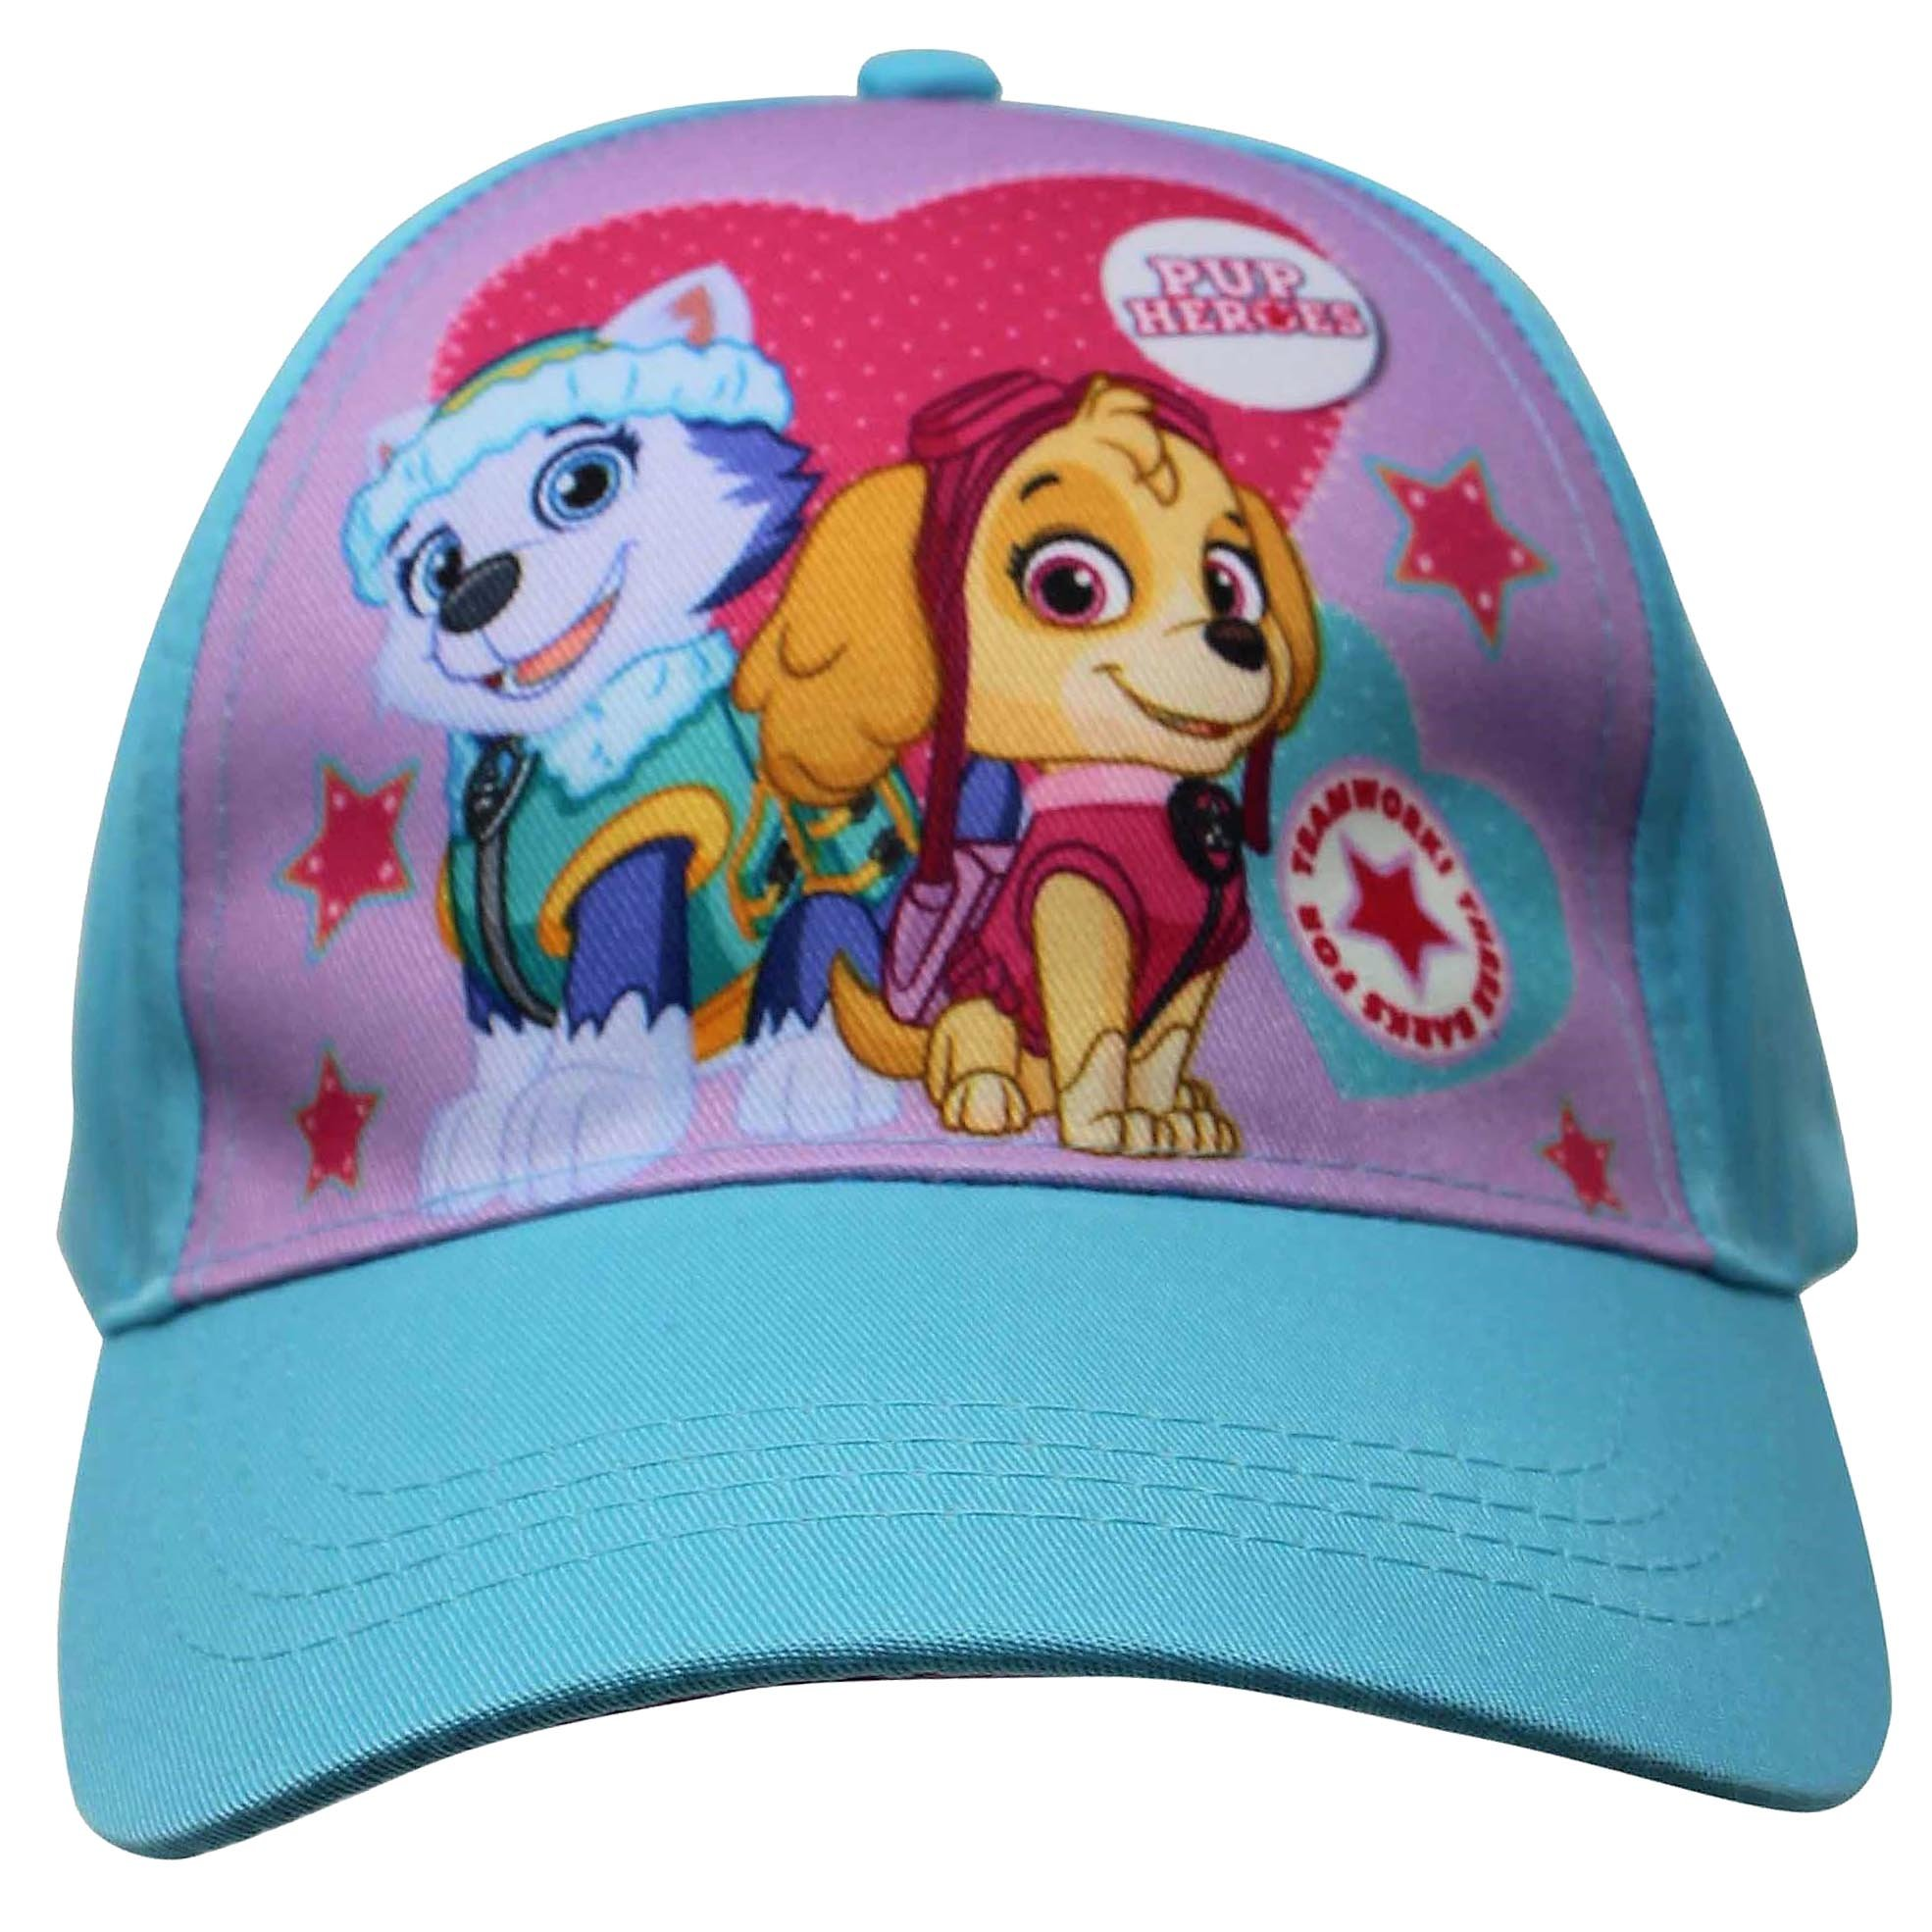 Accessory Supply Officially Licenesed Paw Patrol Pup Heroes Hat With Everest and Skye For Girls